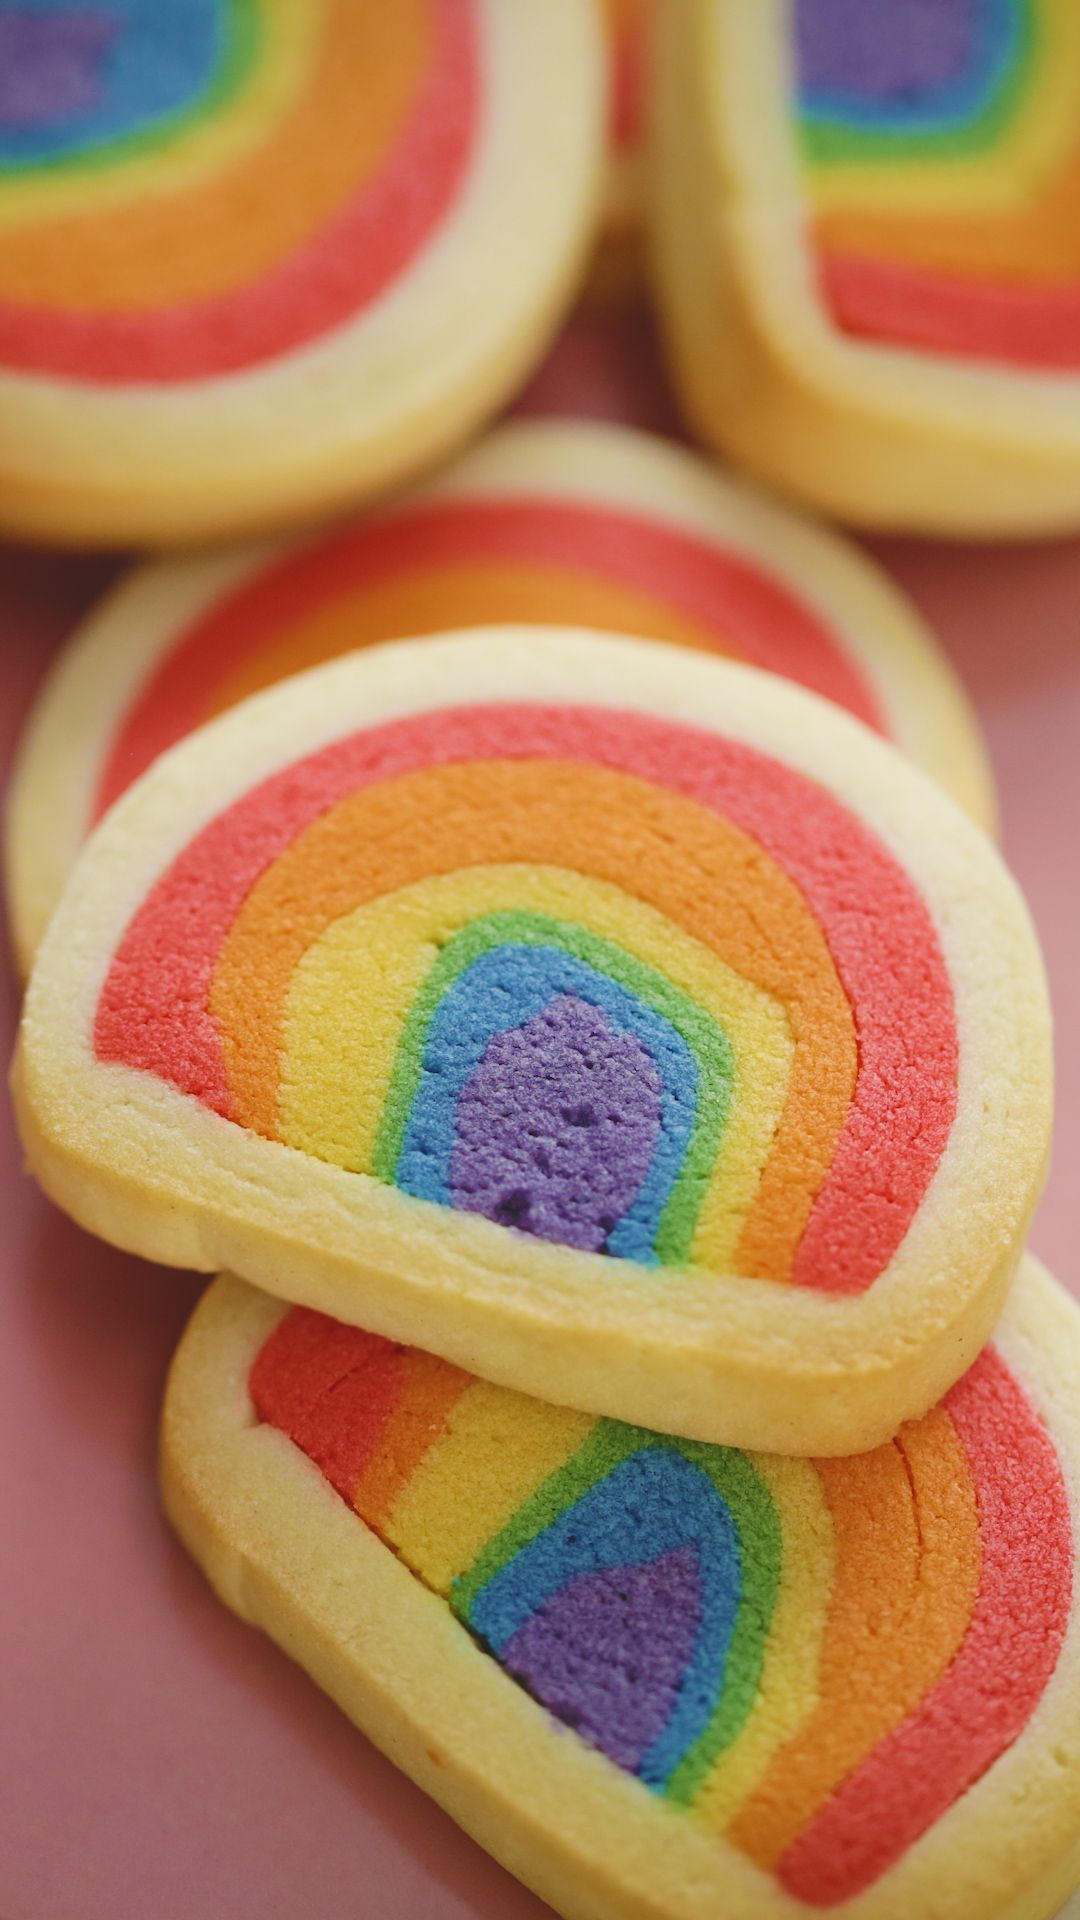 Rainbow Reveal Cookies is part of food-recipes - We've found a great hack to create the most adorable rainbow cookies!